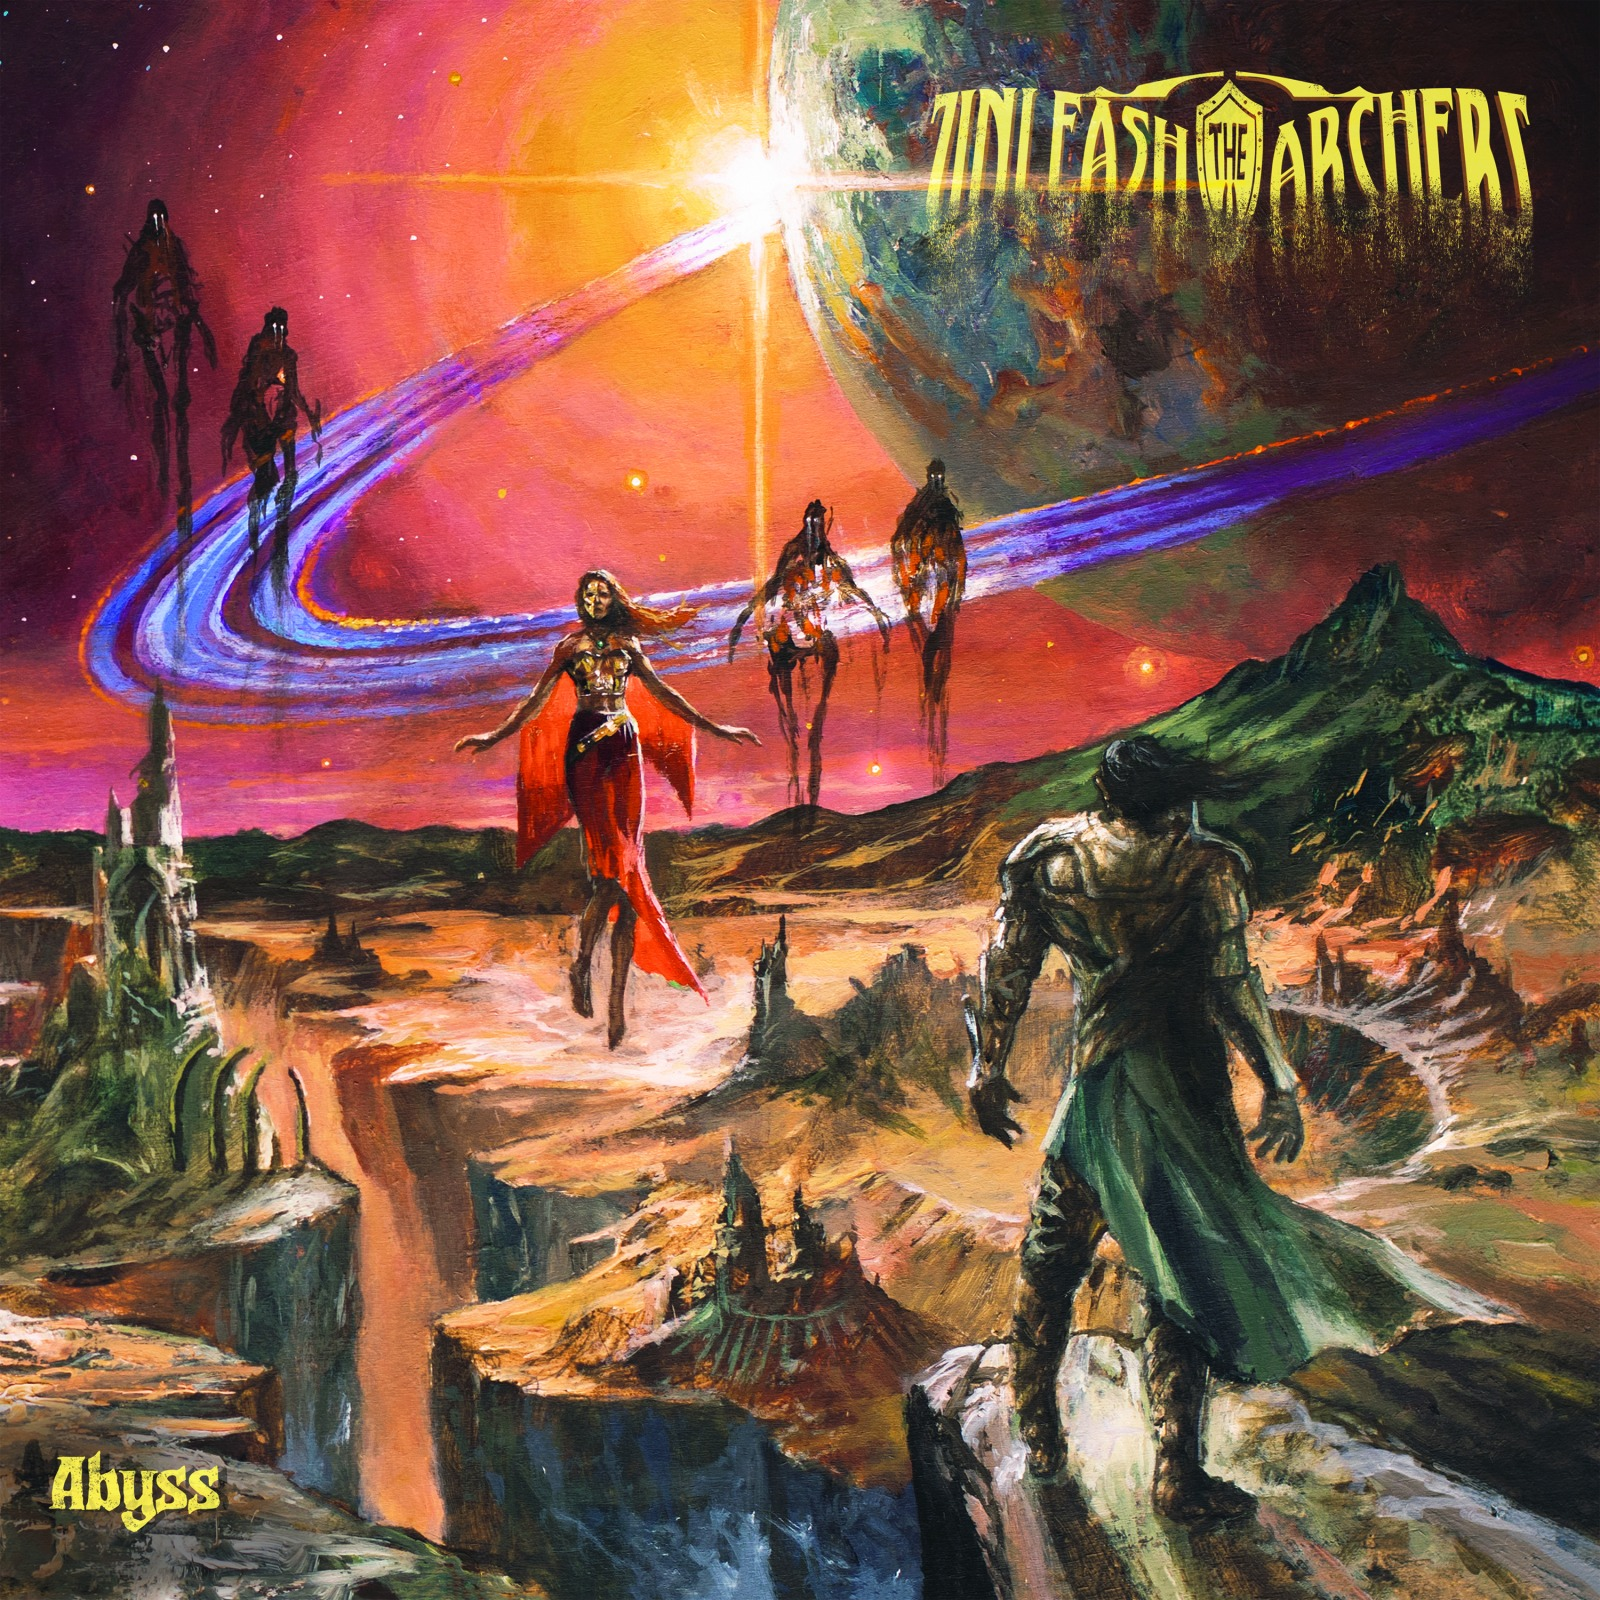 Unleash the Archers – Abyss